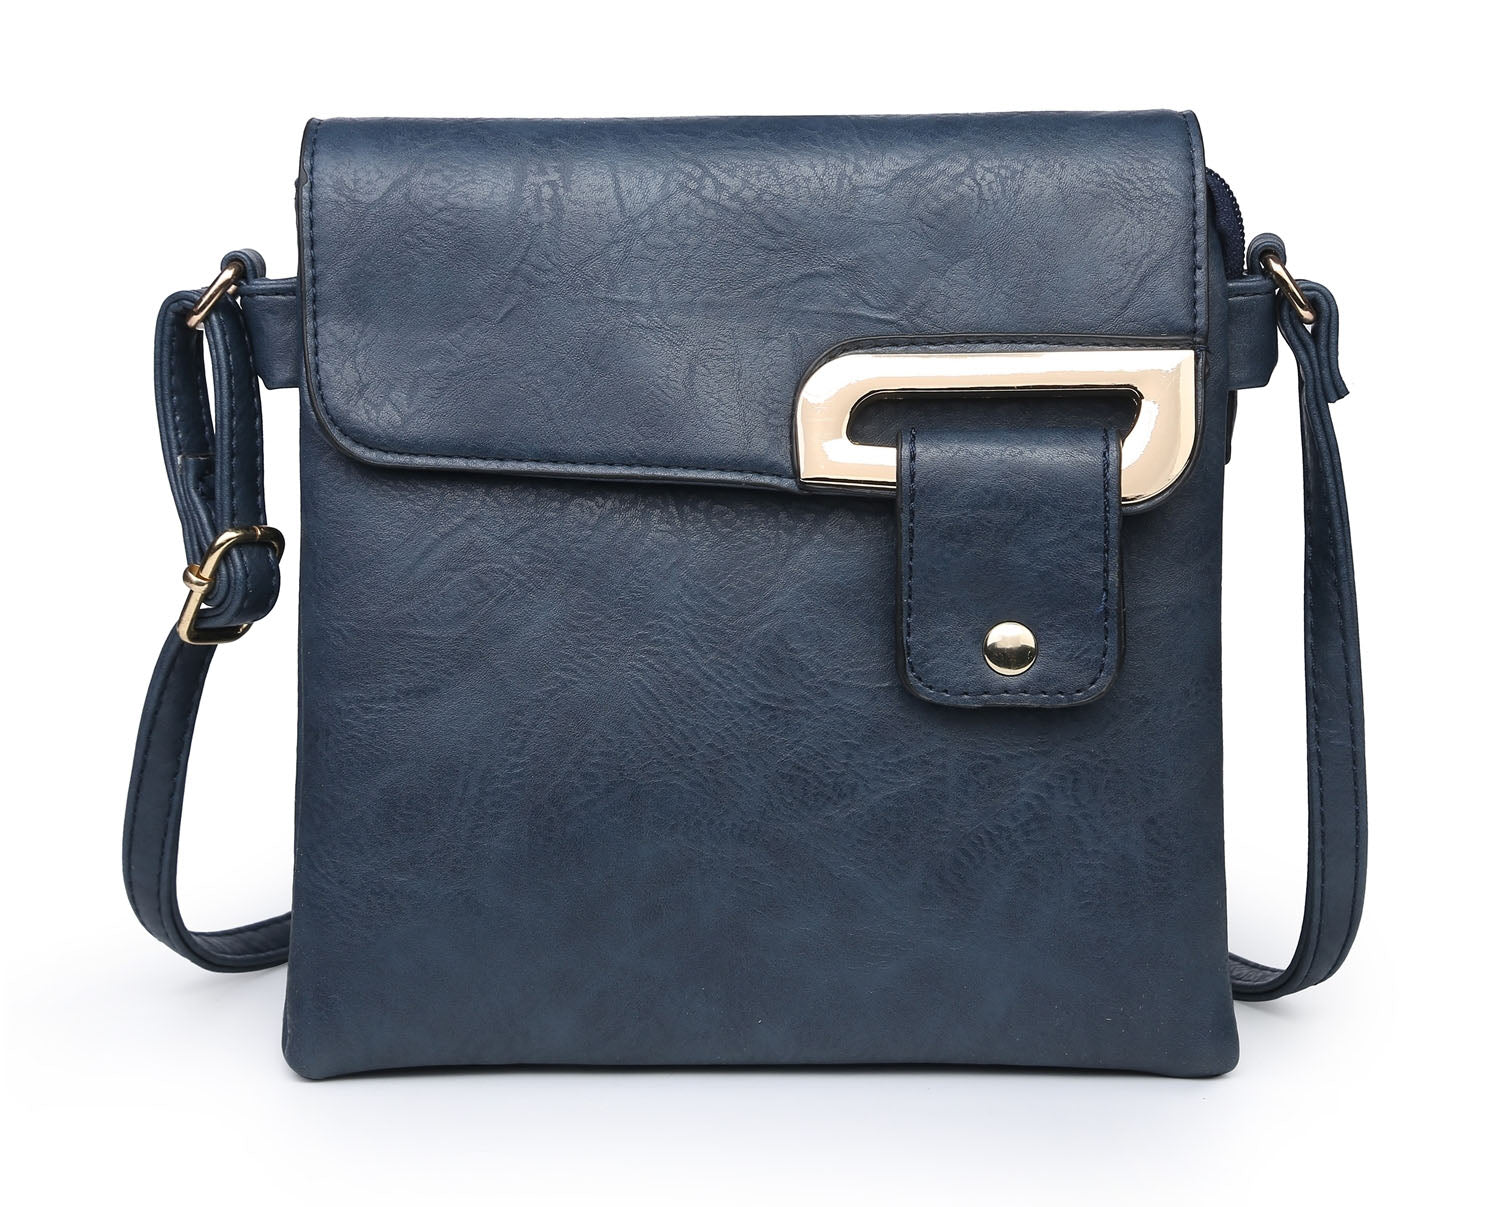 SMALL NAVY BLUE MULTI POCKET CROSSBODY MESSENGER BAG